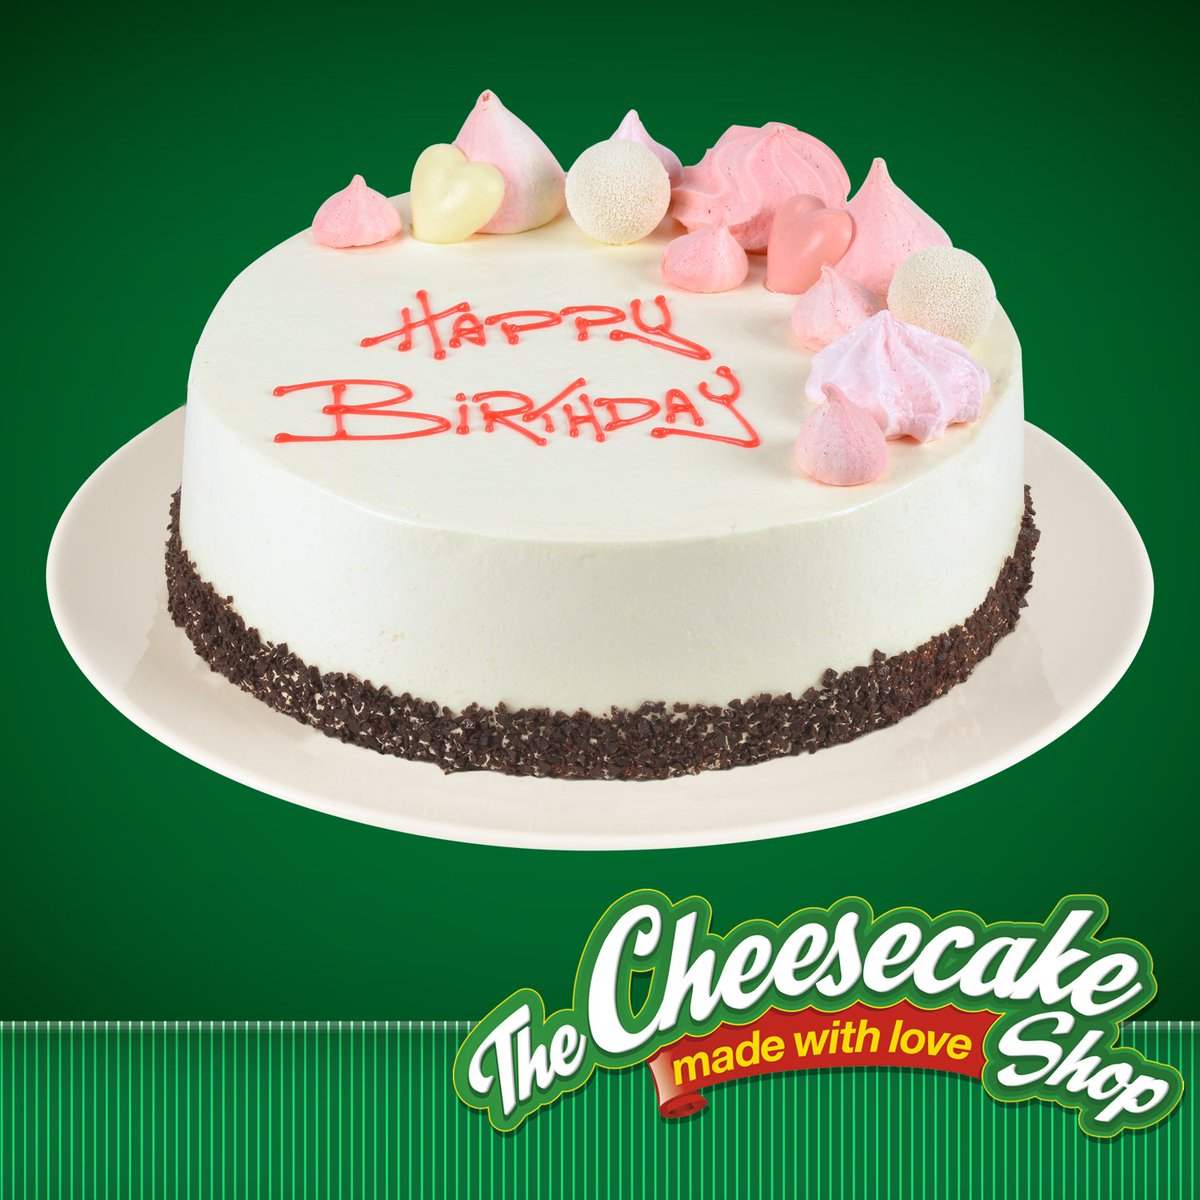 The Cheesecake Shop On Twitter Looking For That Perfectly Pretty Birthday Cake Celebrate With Our NEW Lets Pink